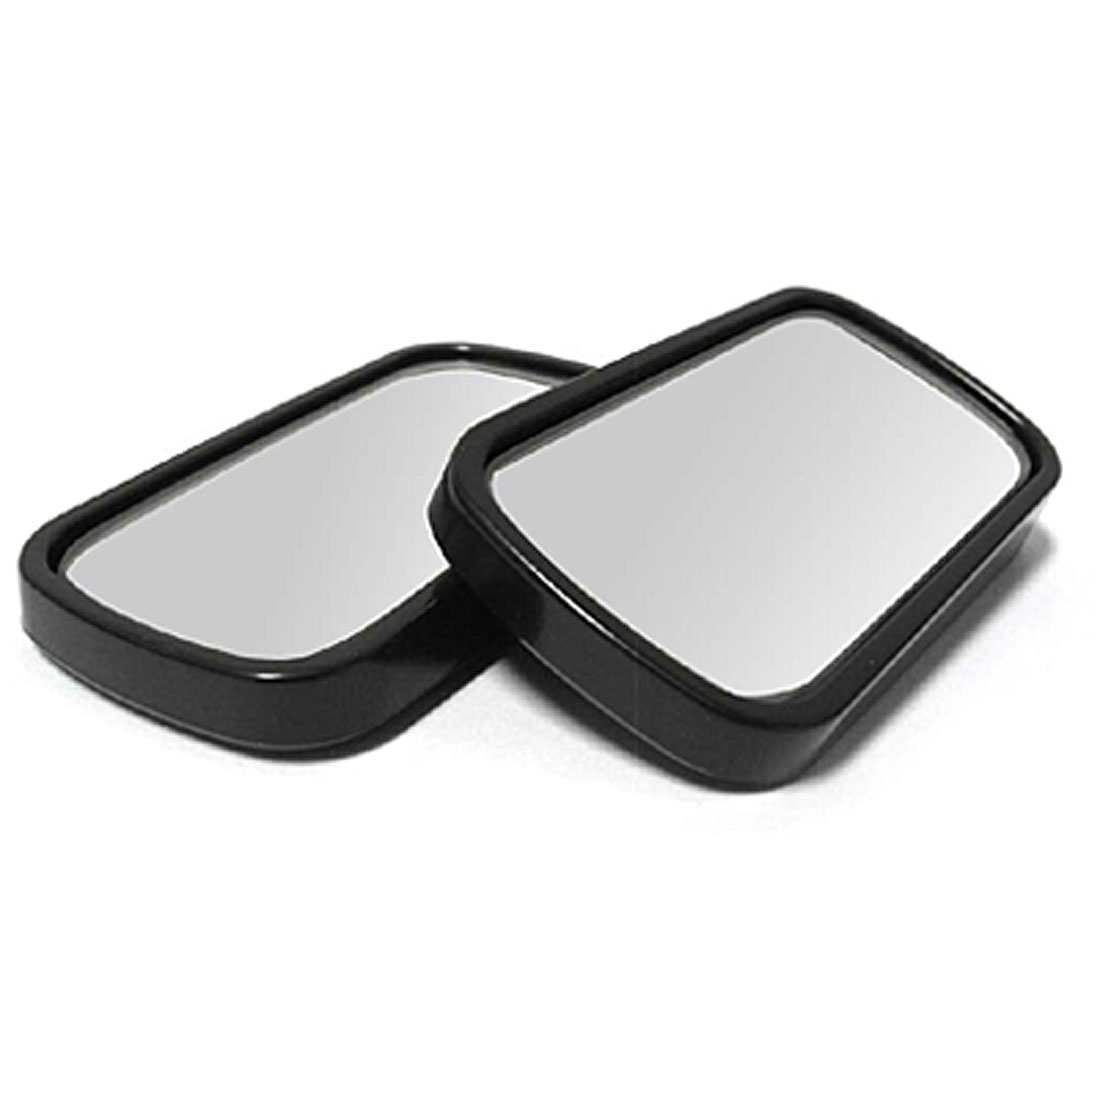 2pcs Black Rectangle Car Rear Side View Wide Angle Blind Spot Mirror 63mm x 34mm